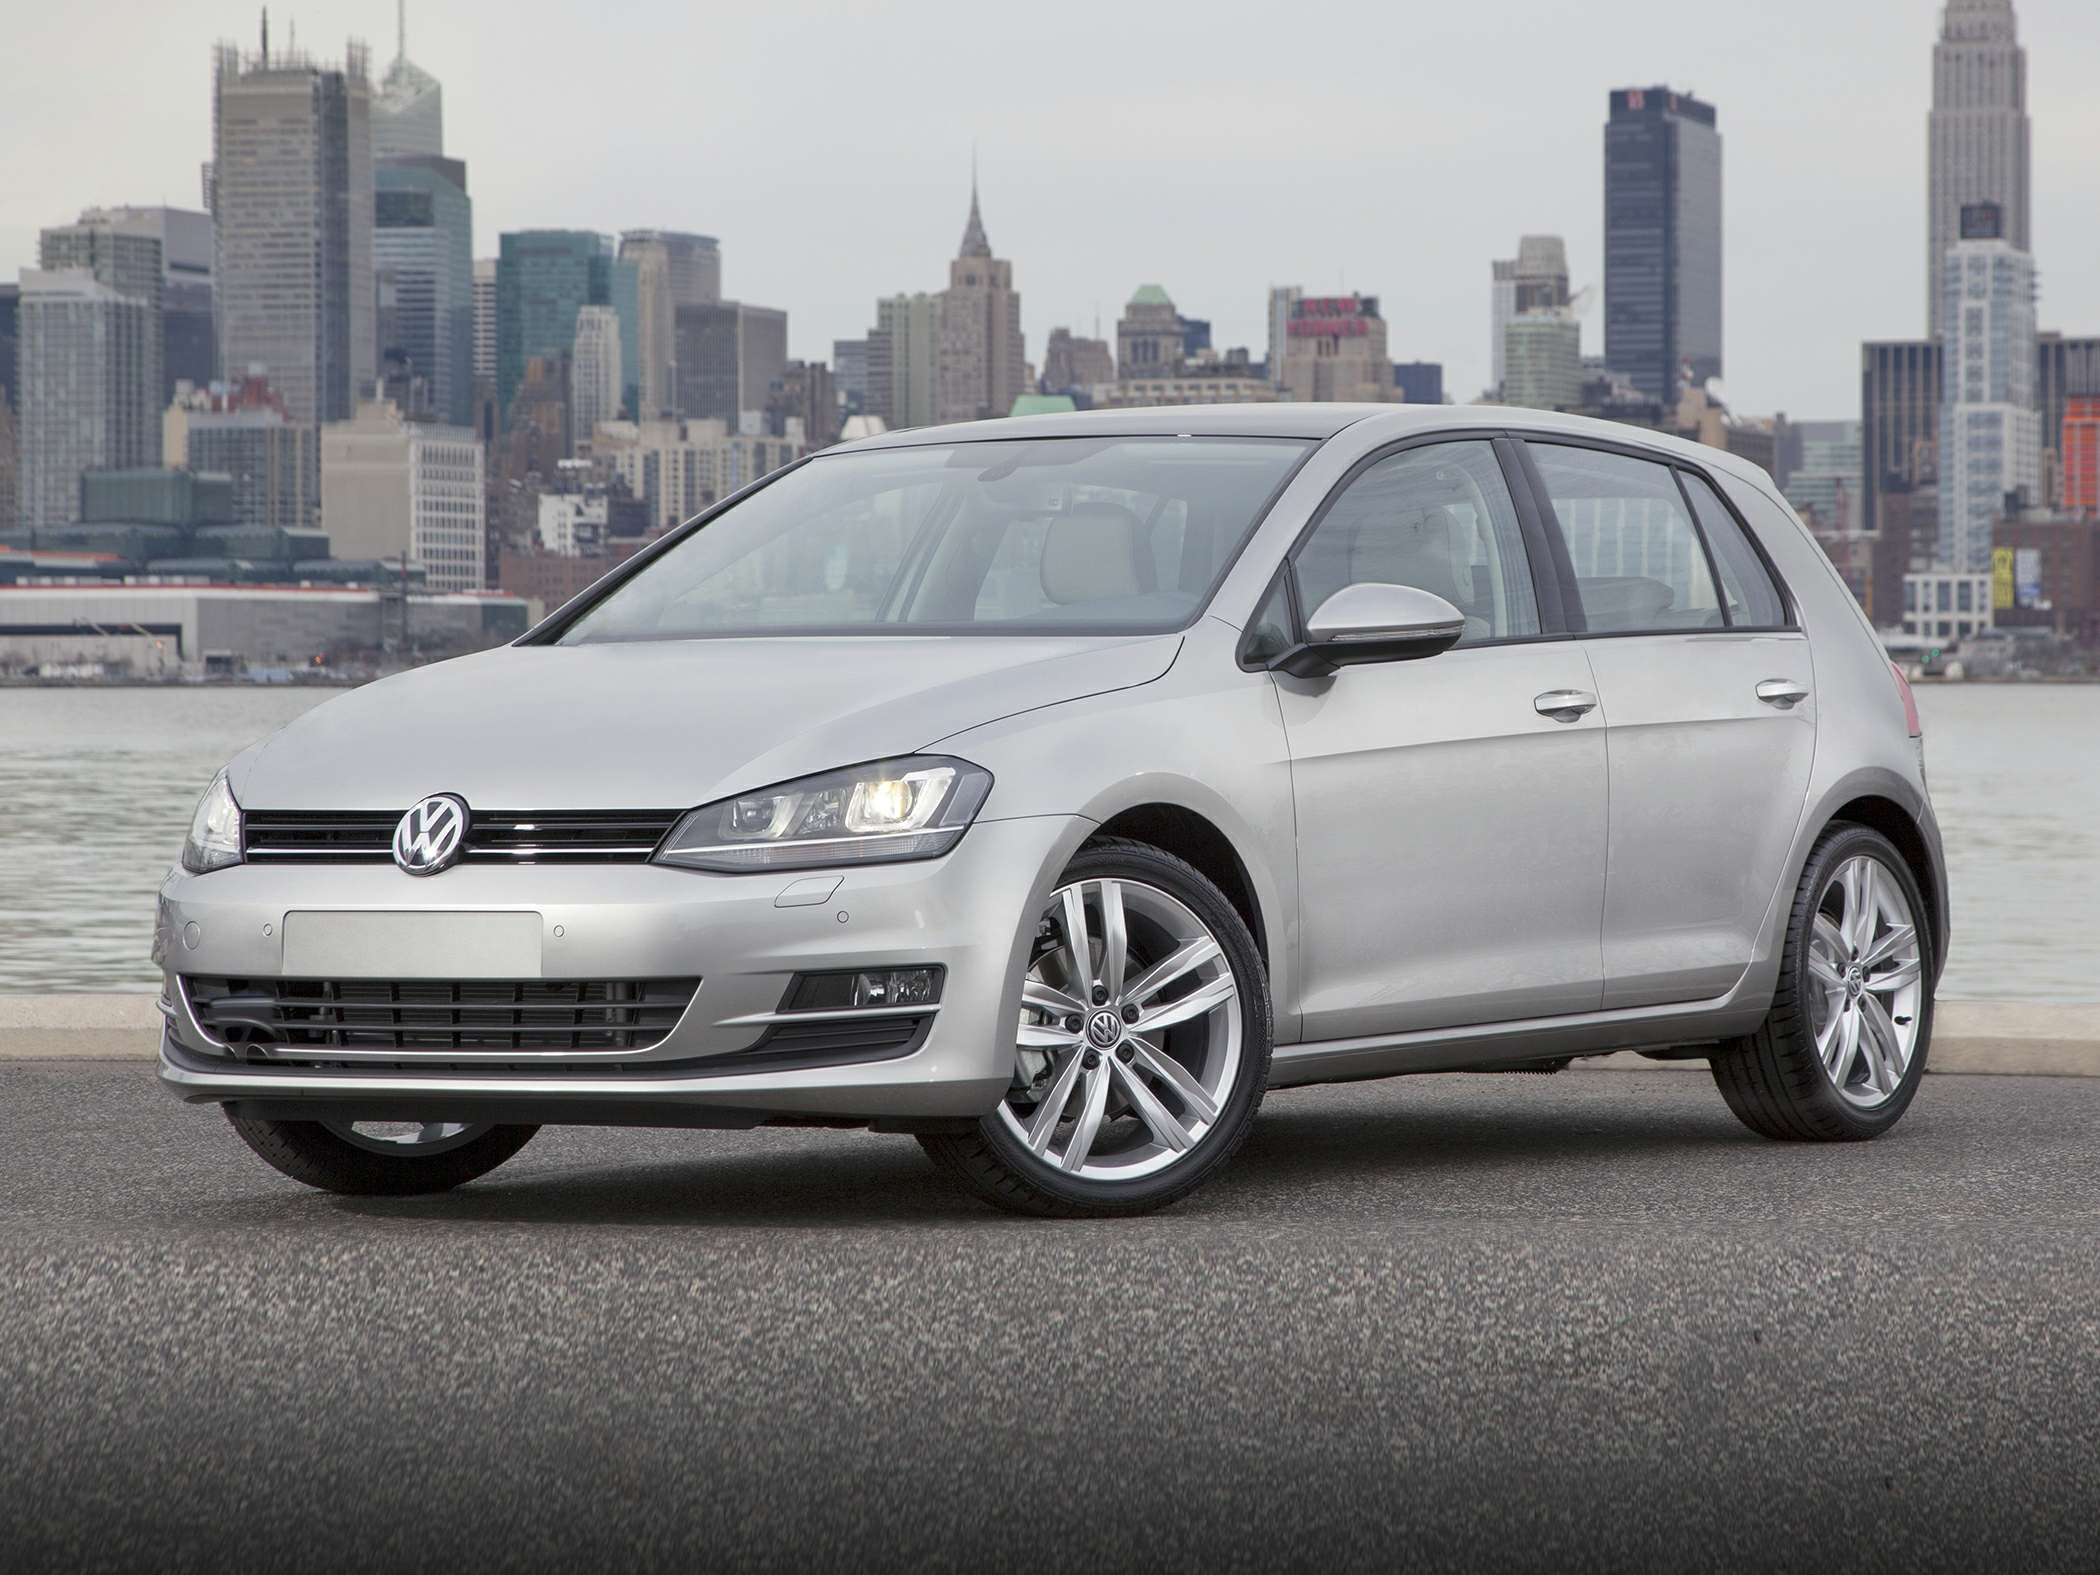 Used Fuel Efficient Cars for Sale | VW of Kingston